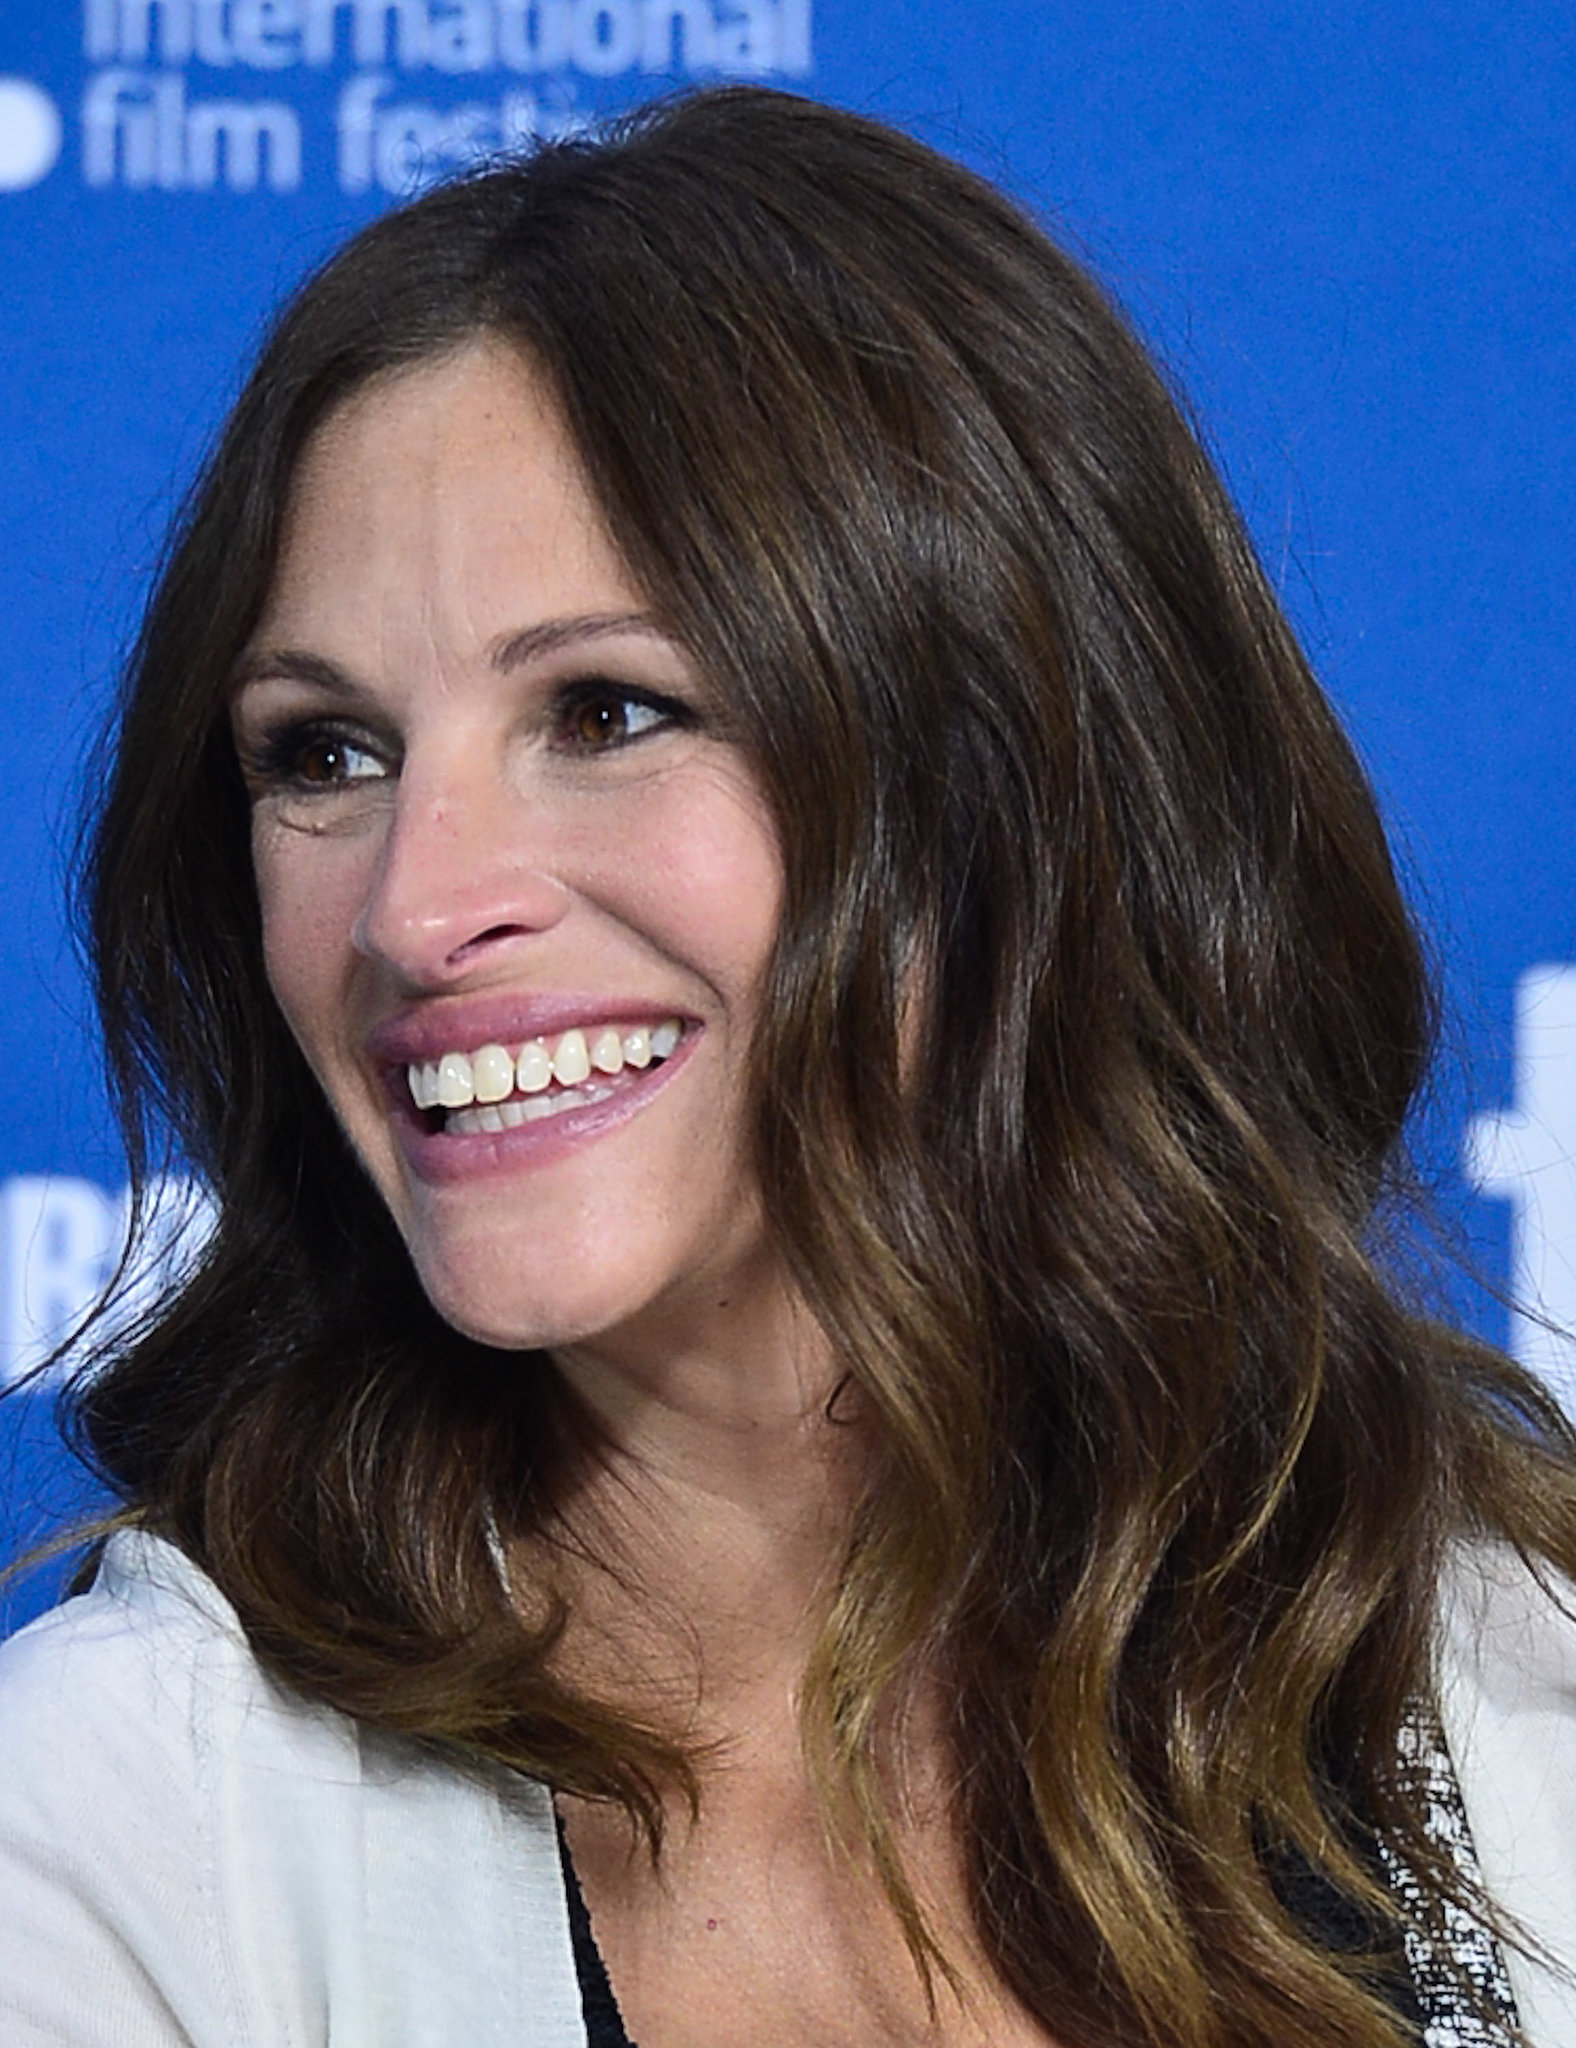 At the August: Osage County press conference, Julia